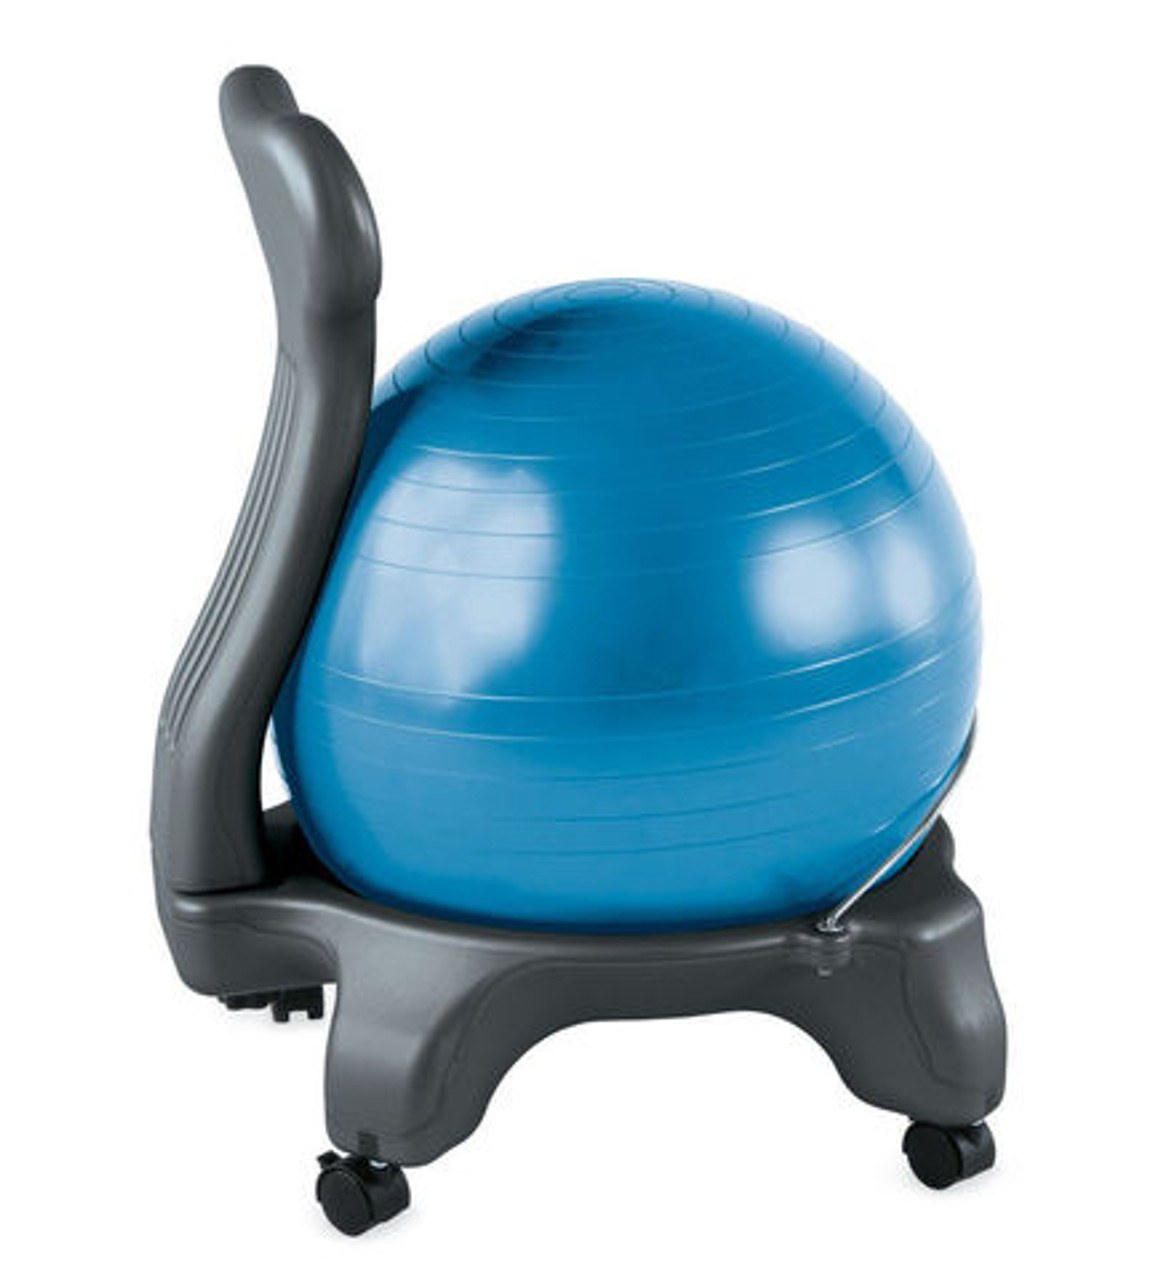 stability kids chair seats balance for ball